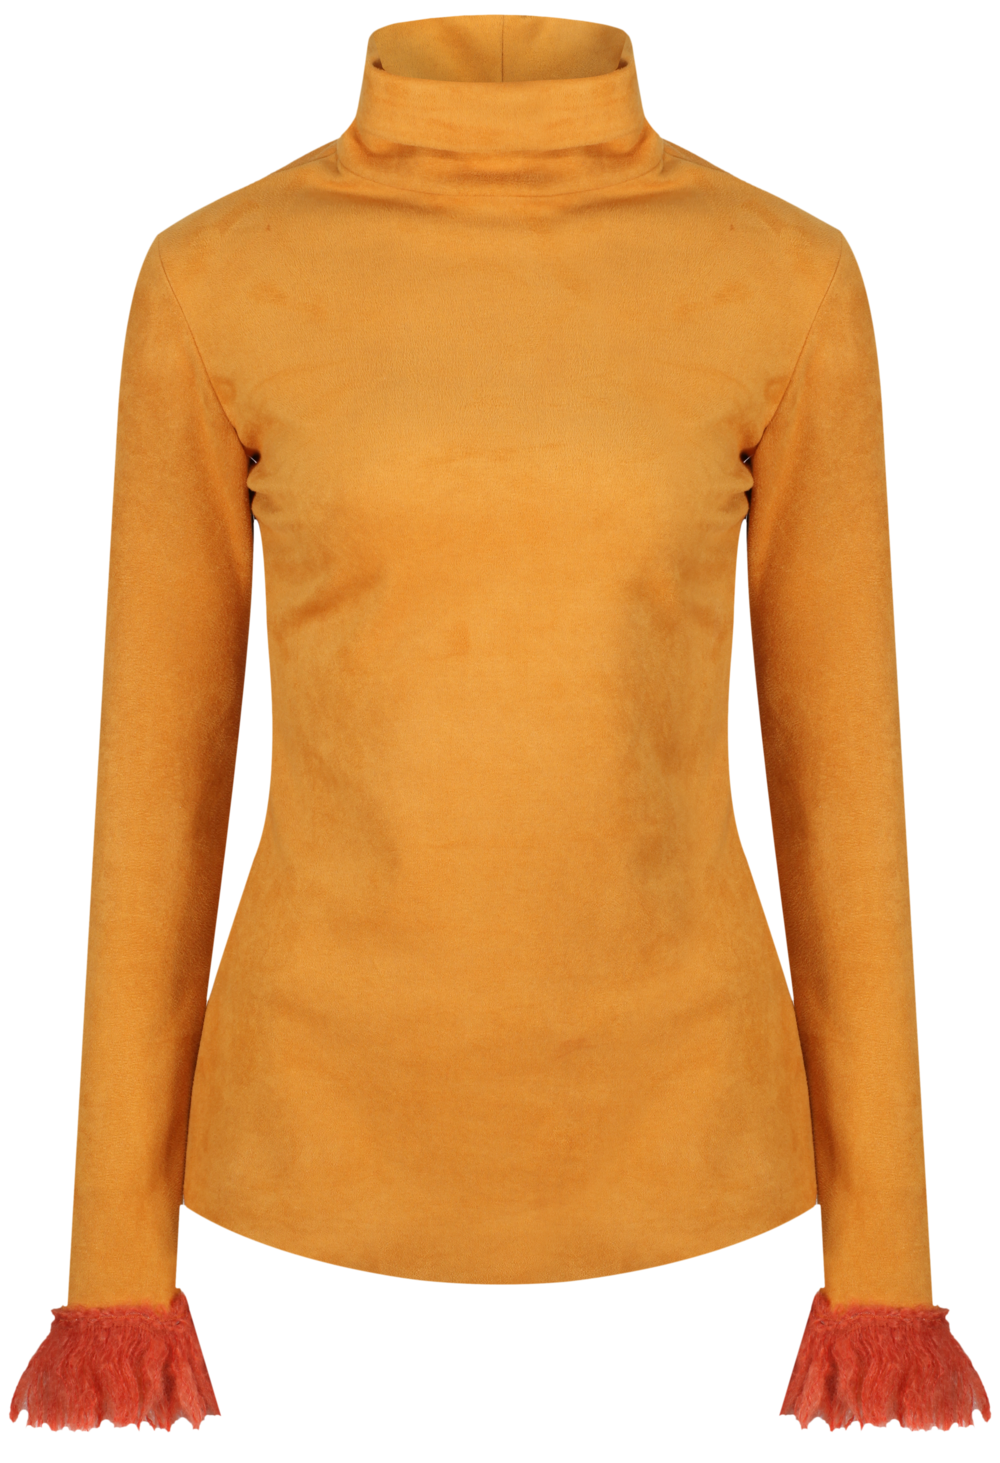 LYRA TOP MUSTARD - SHOP NOW